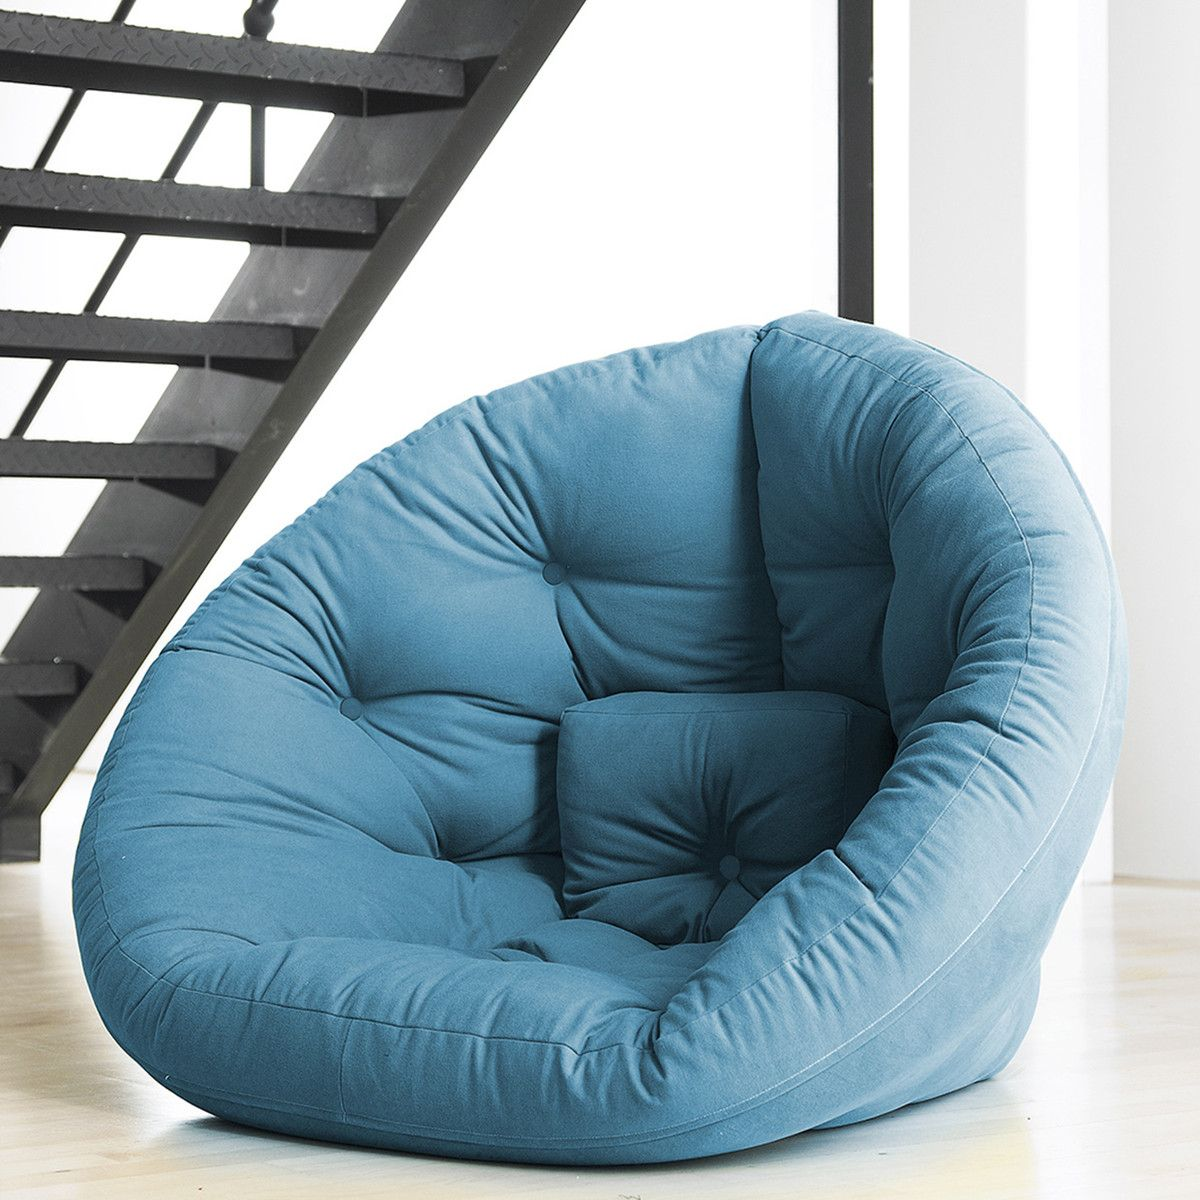 Futon Chair Nest Large Blue I Want This In Green